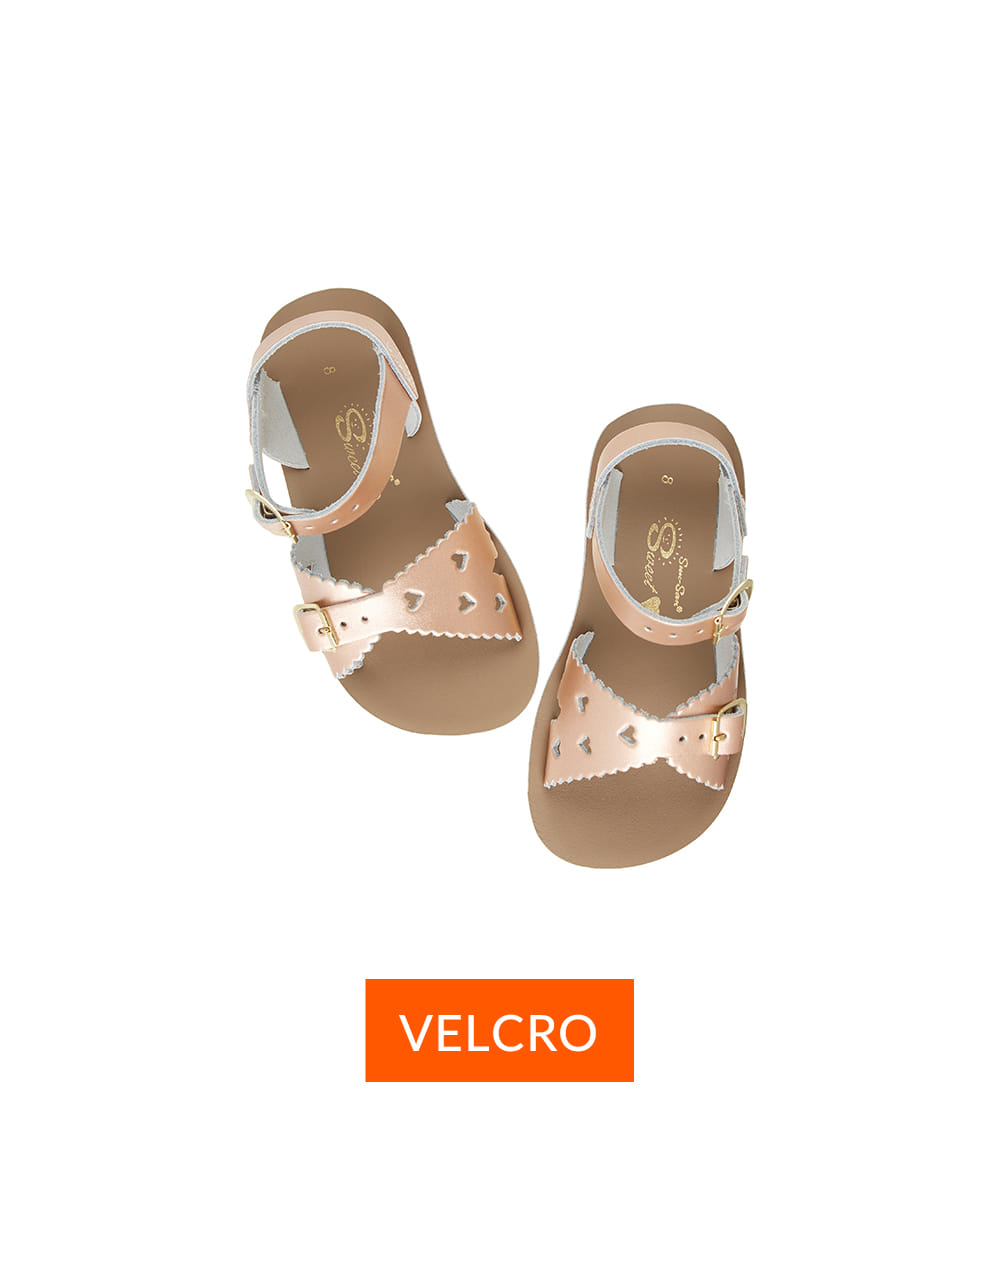 SALT-WATER SANDAL  CHILD VELCRO  SWEETHEART PREMIUM  Rose Gold